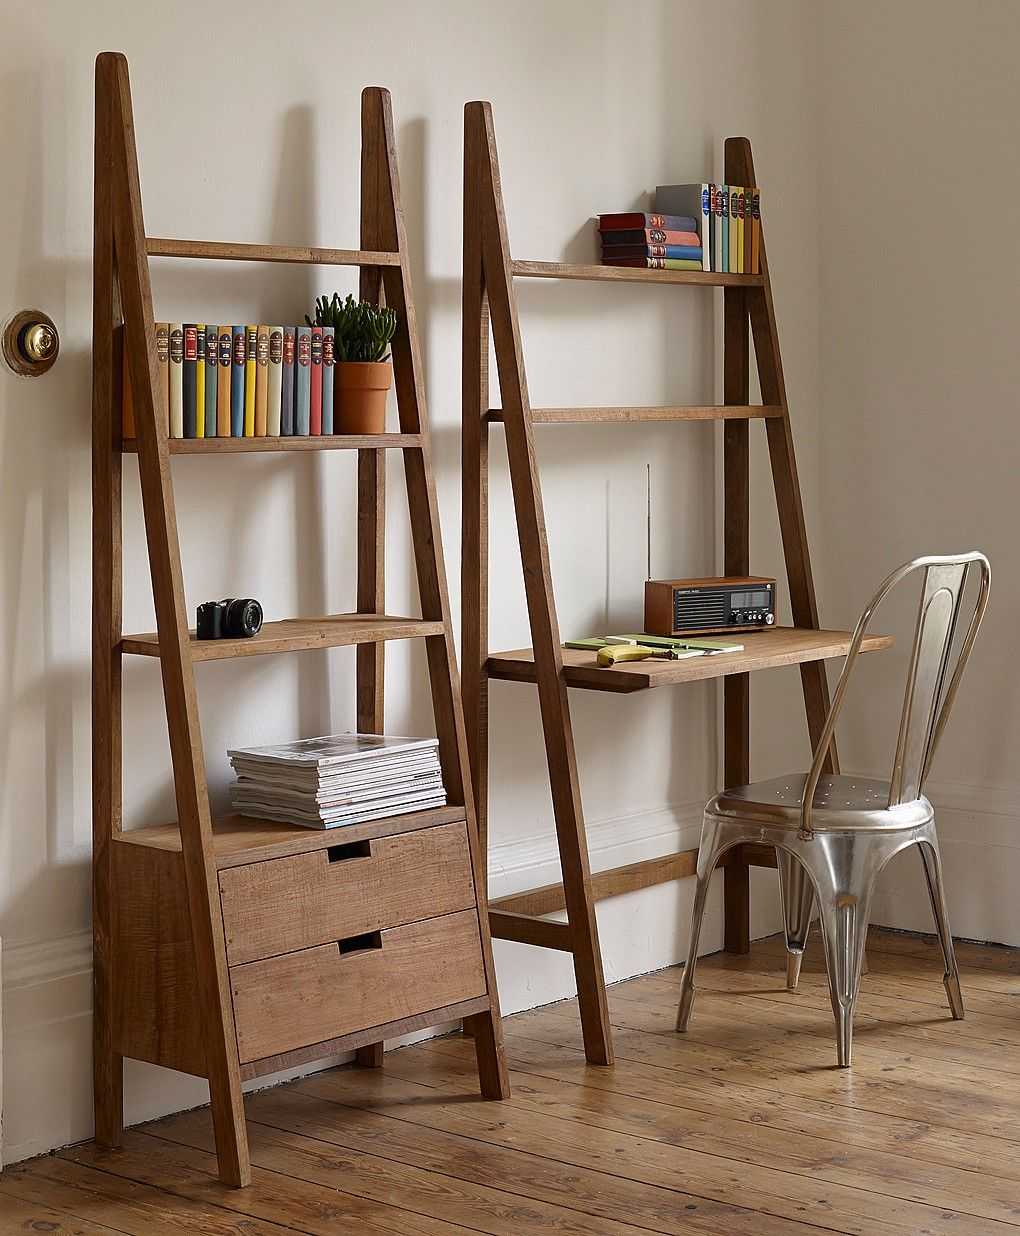 Sumatra Ladder Design Desk From Lombok Bookcase With Drawers